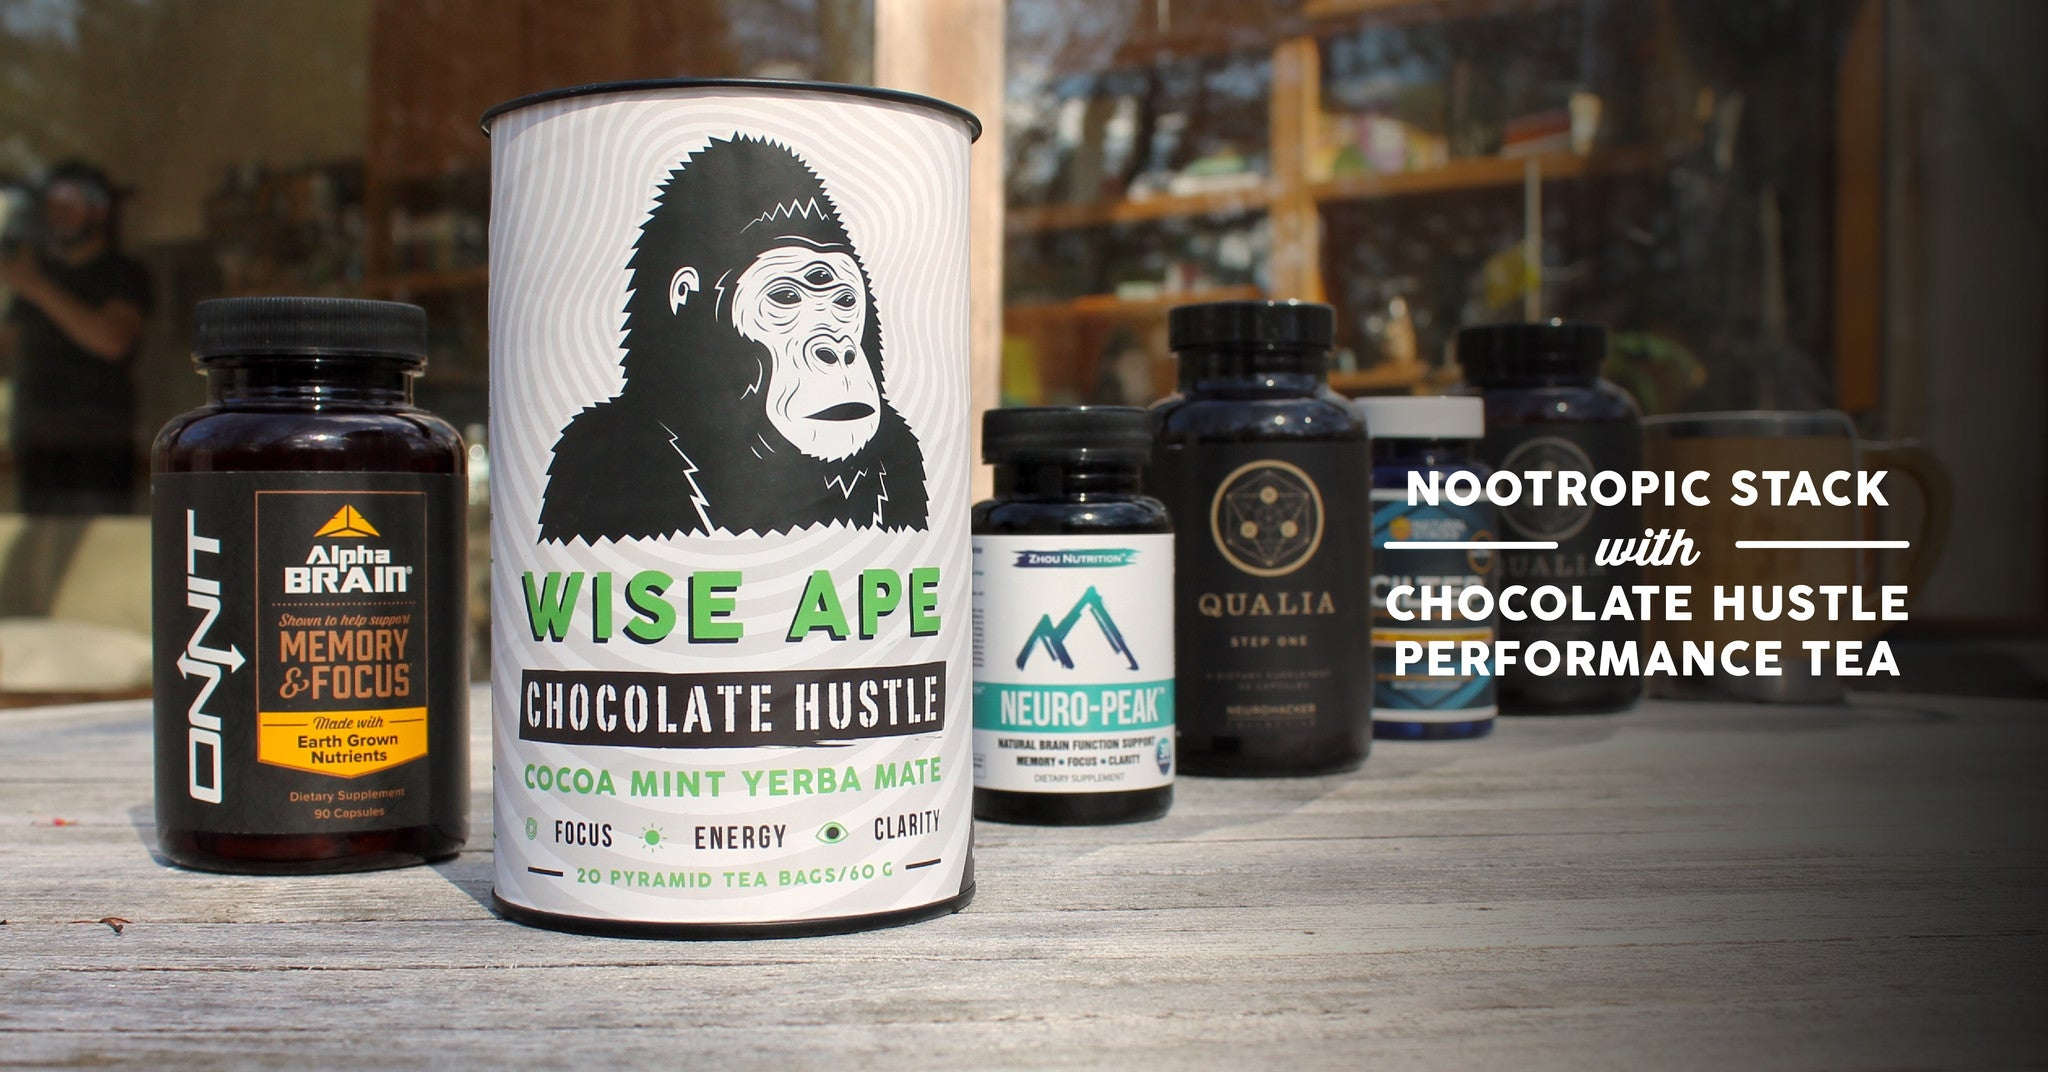 Nootropic Stack With Chocolate Hustle Adaptogenic Tea Wise Ape